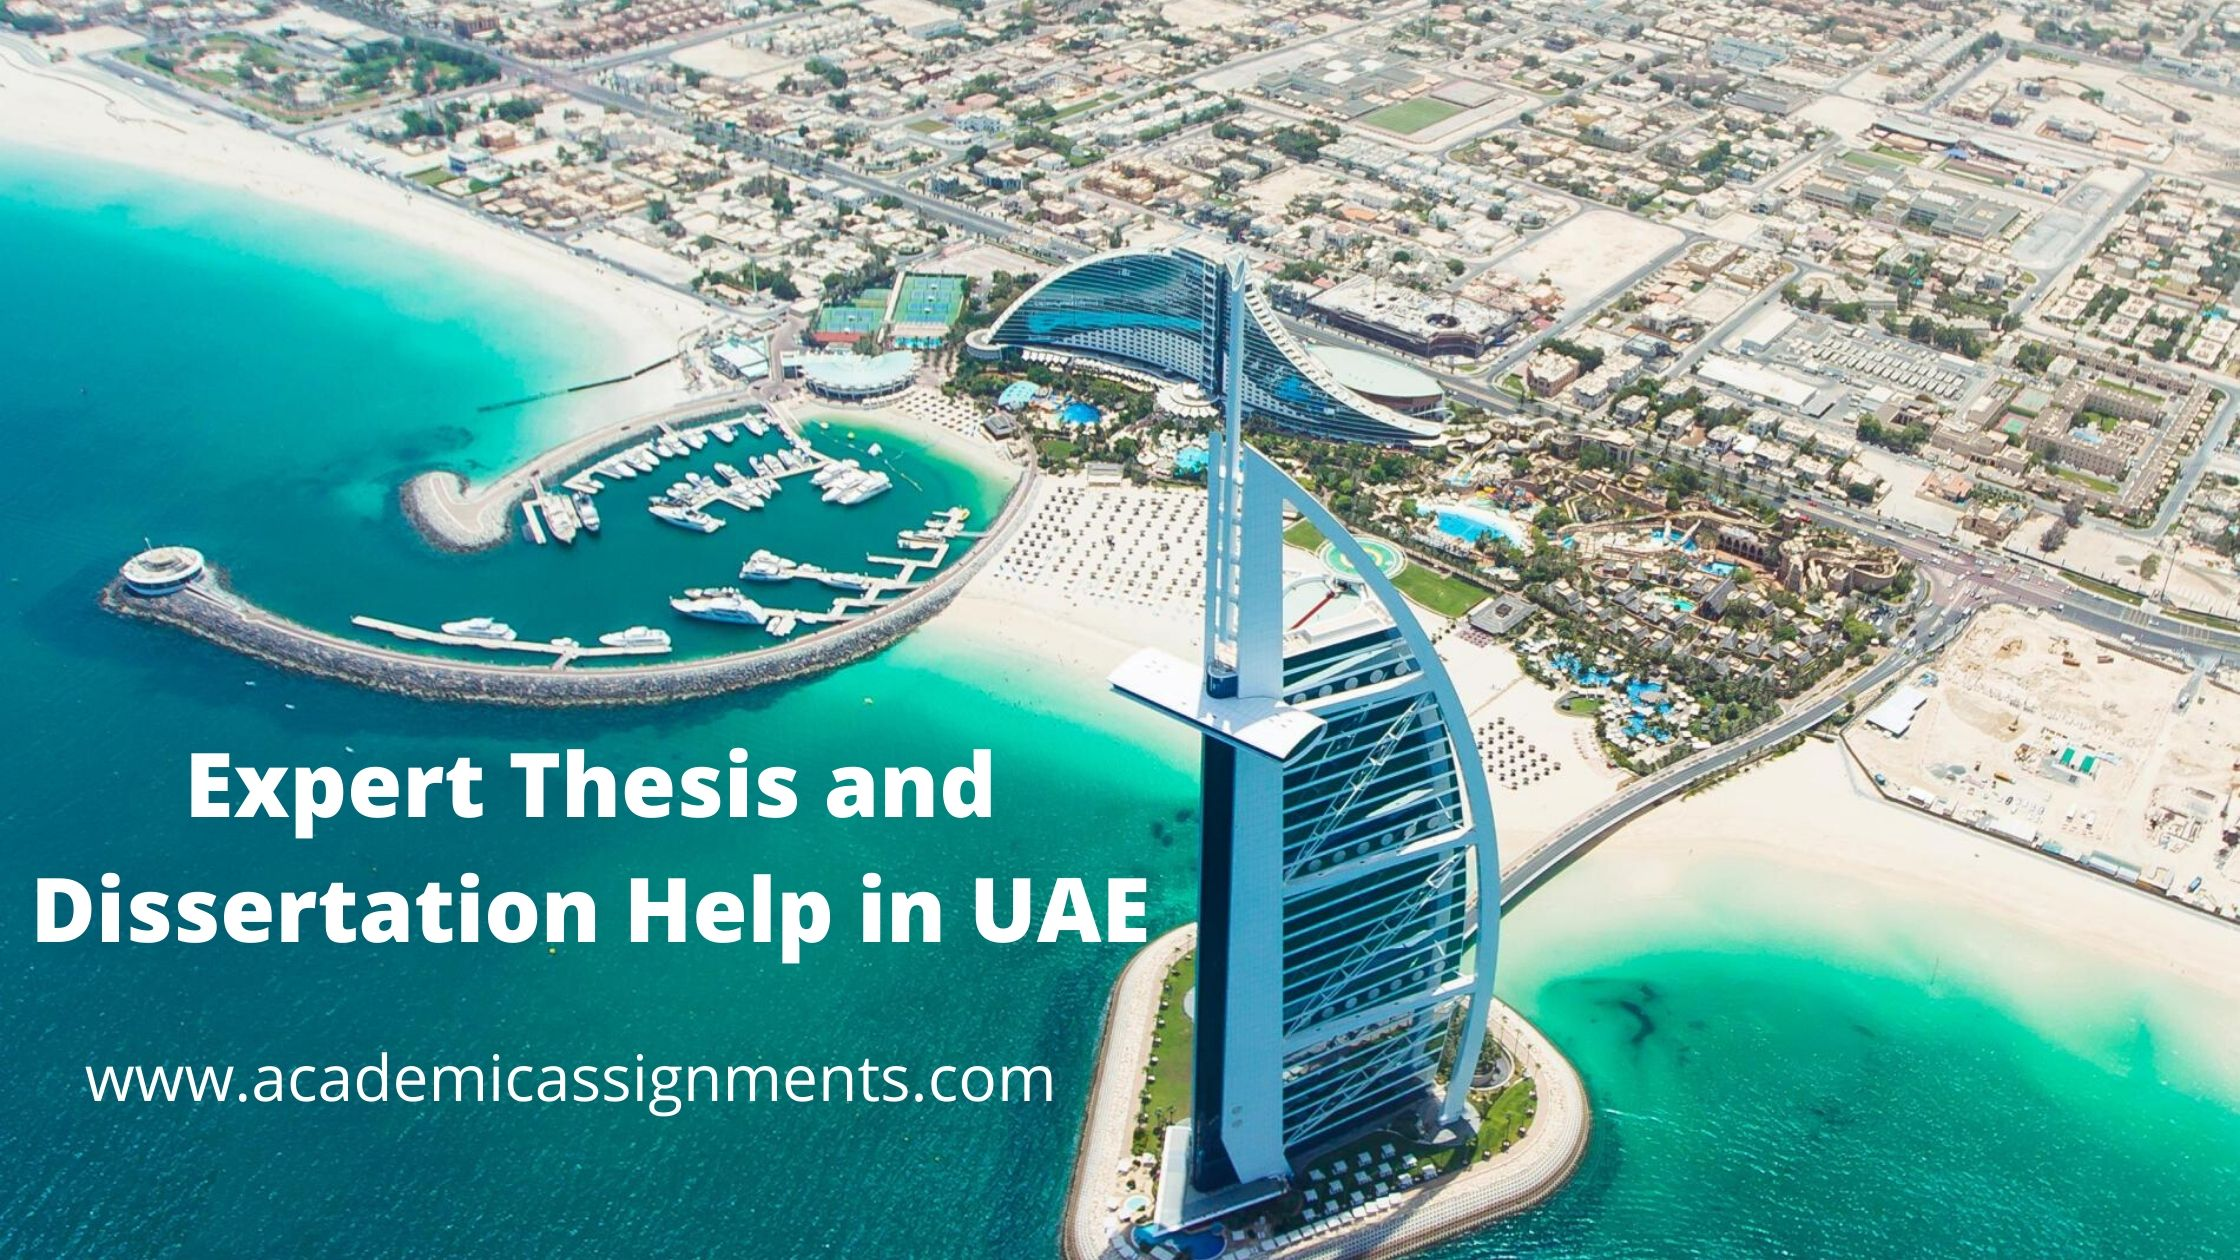 Expert Thesis and Dissertation Help in UAE